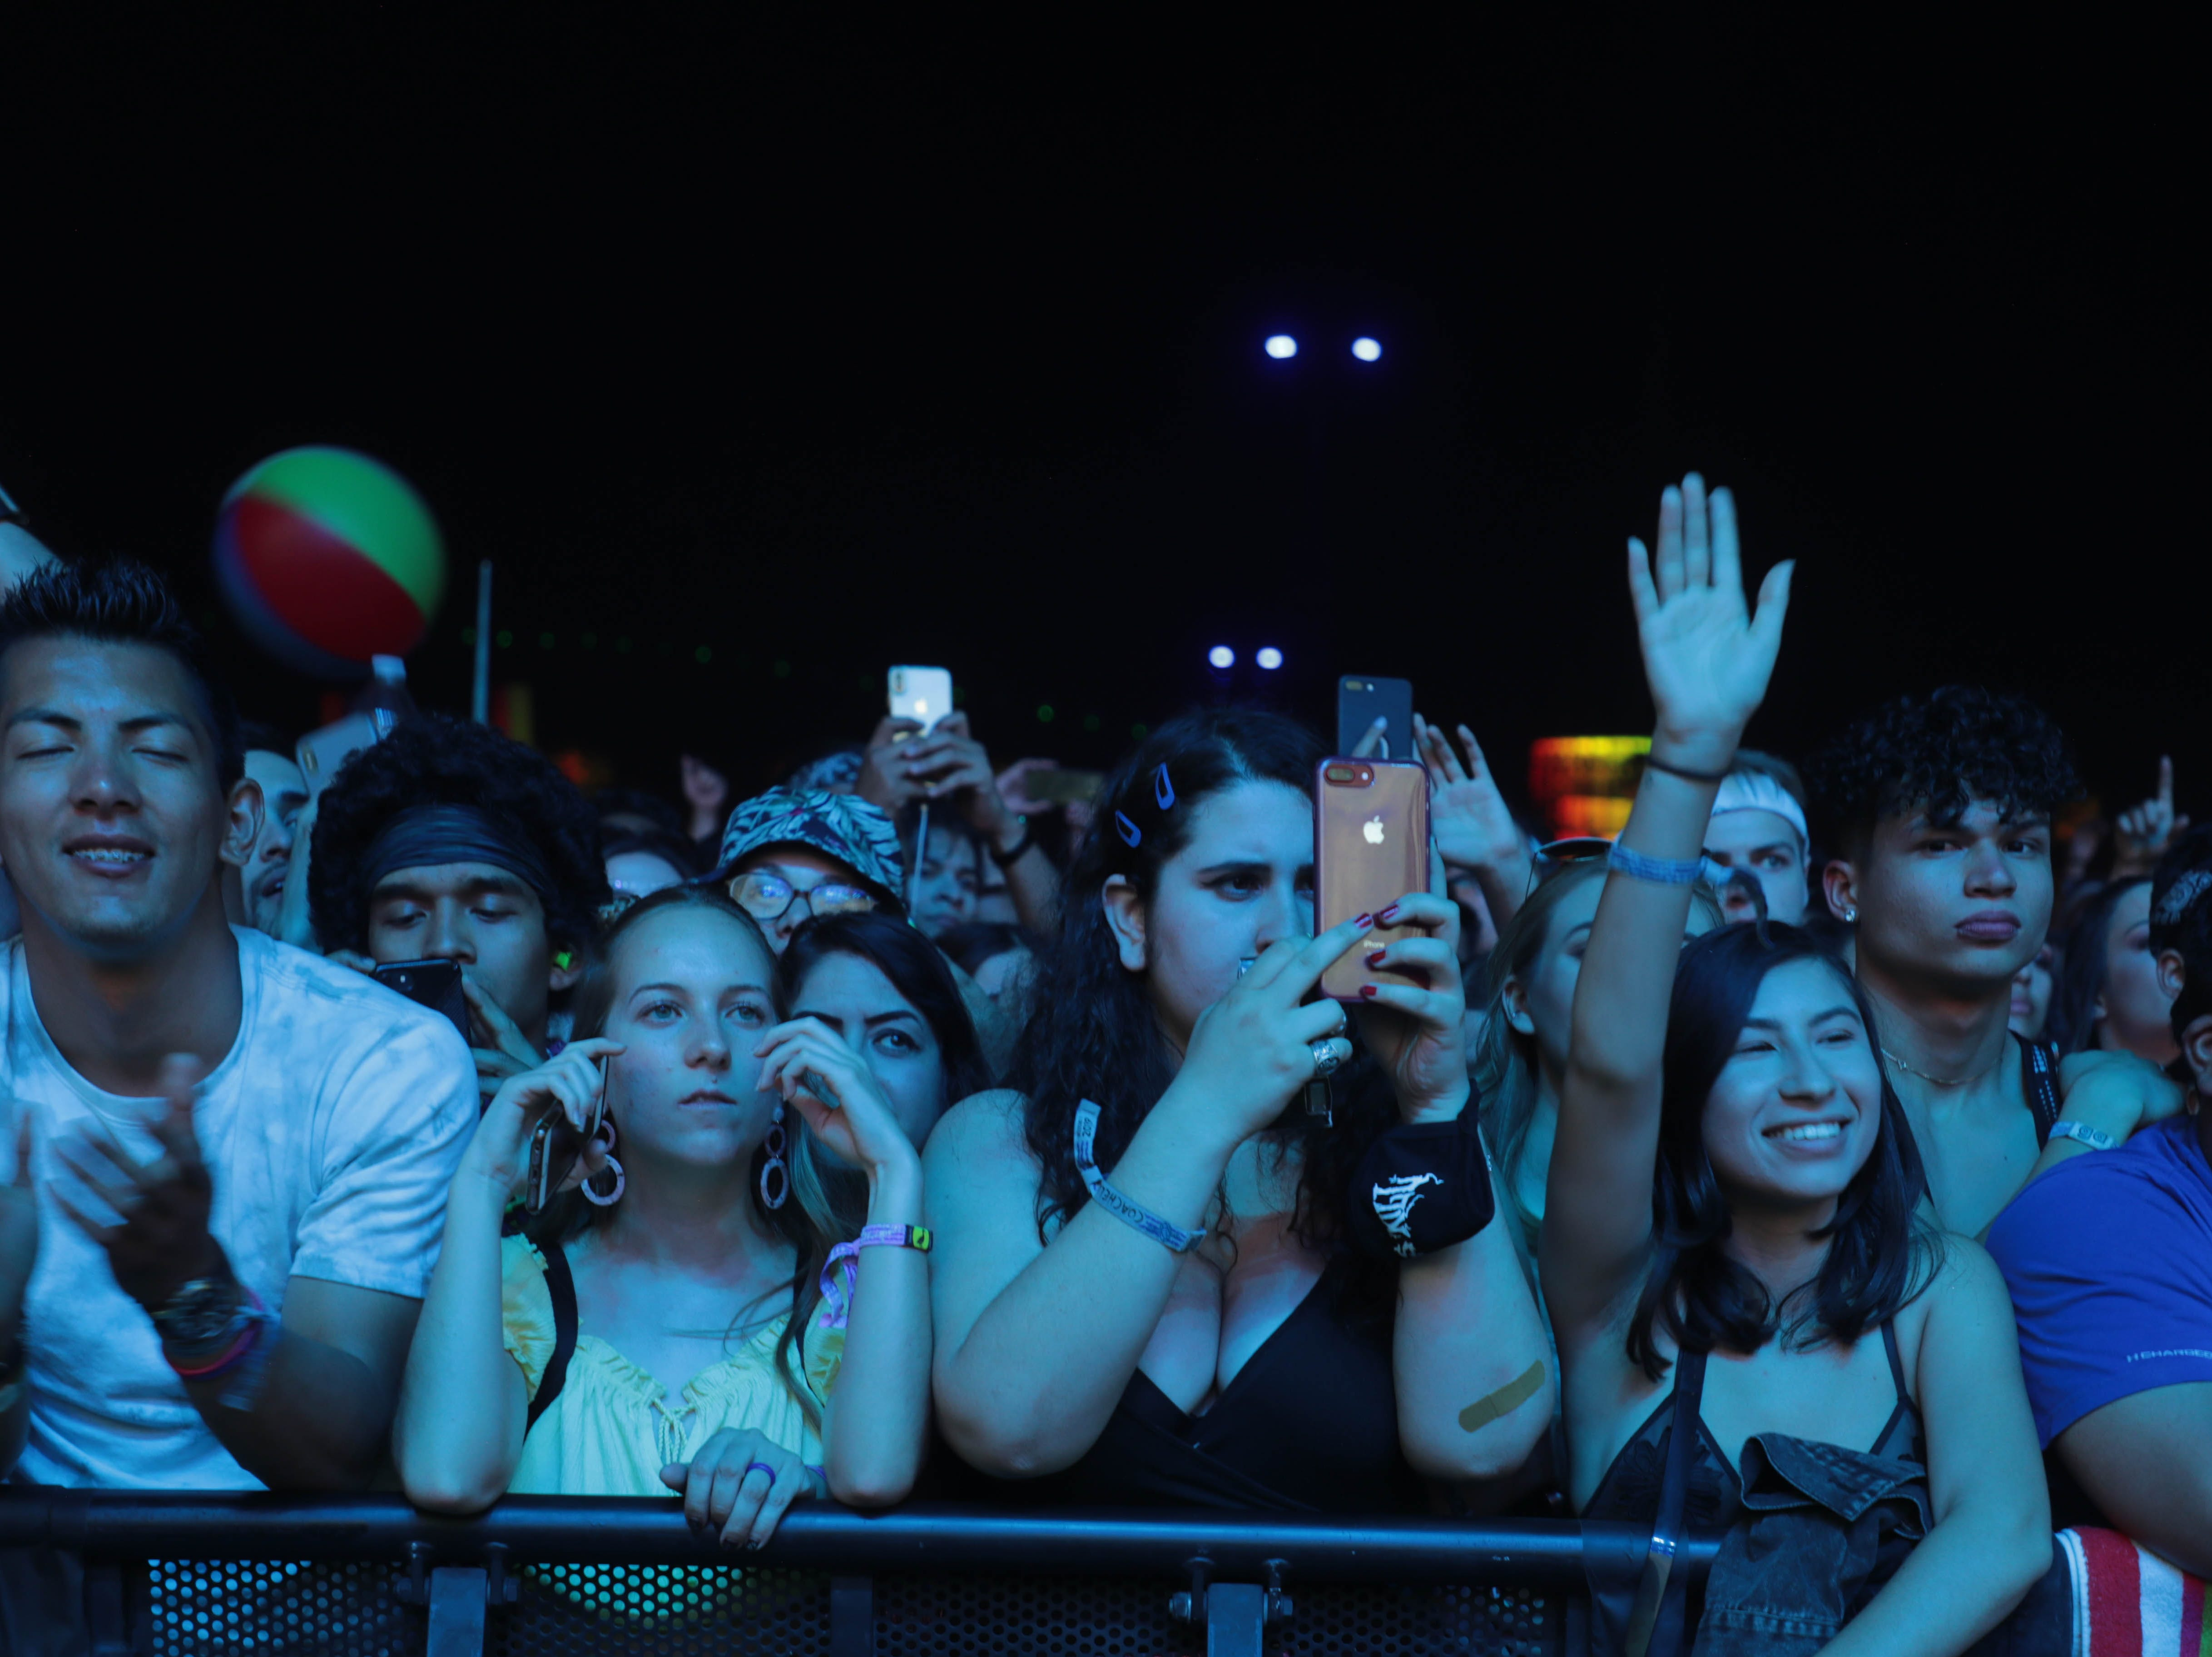 Fans listen as Khalid performs at the Coachella Valley Music and Arts Festival on Sunday, April 14, 2019 in Indio, Calif.